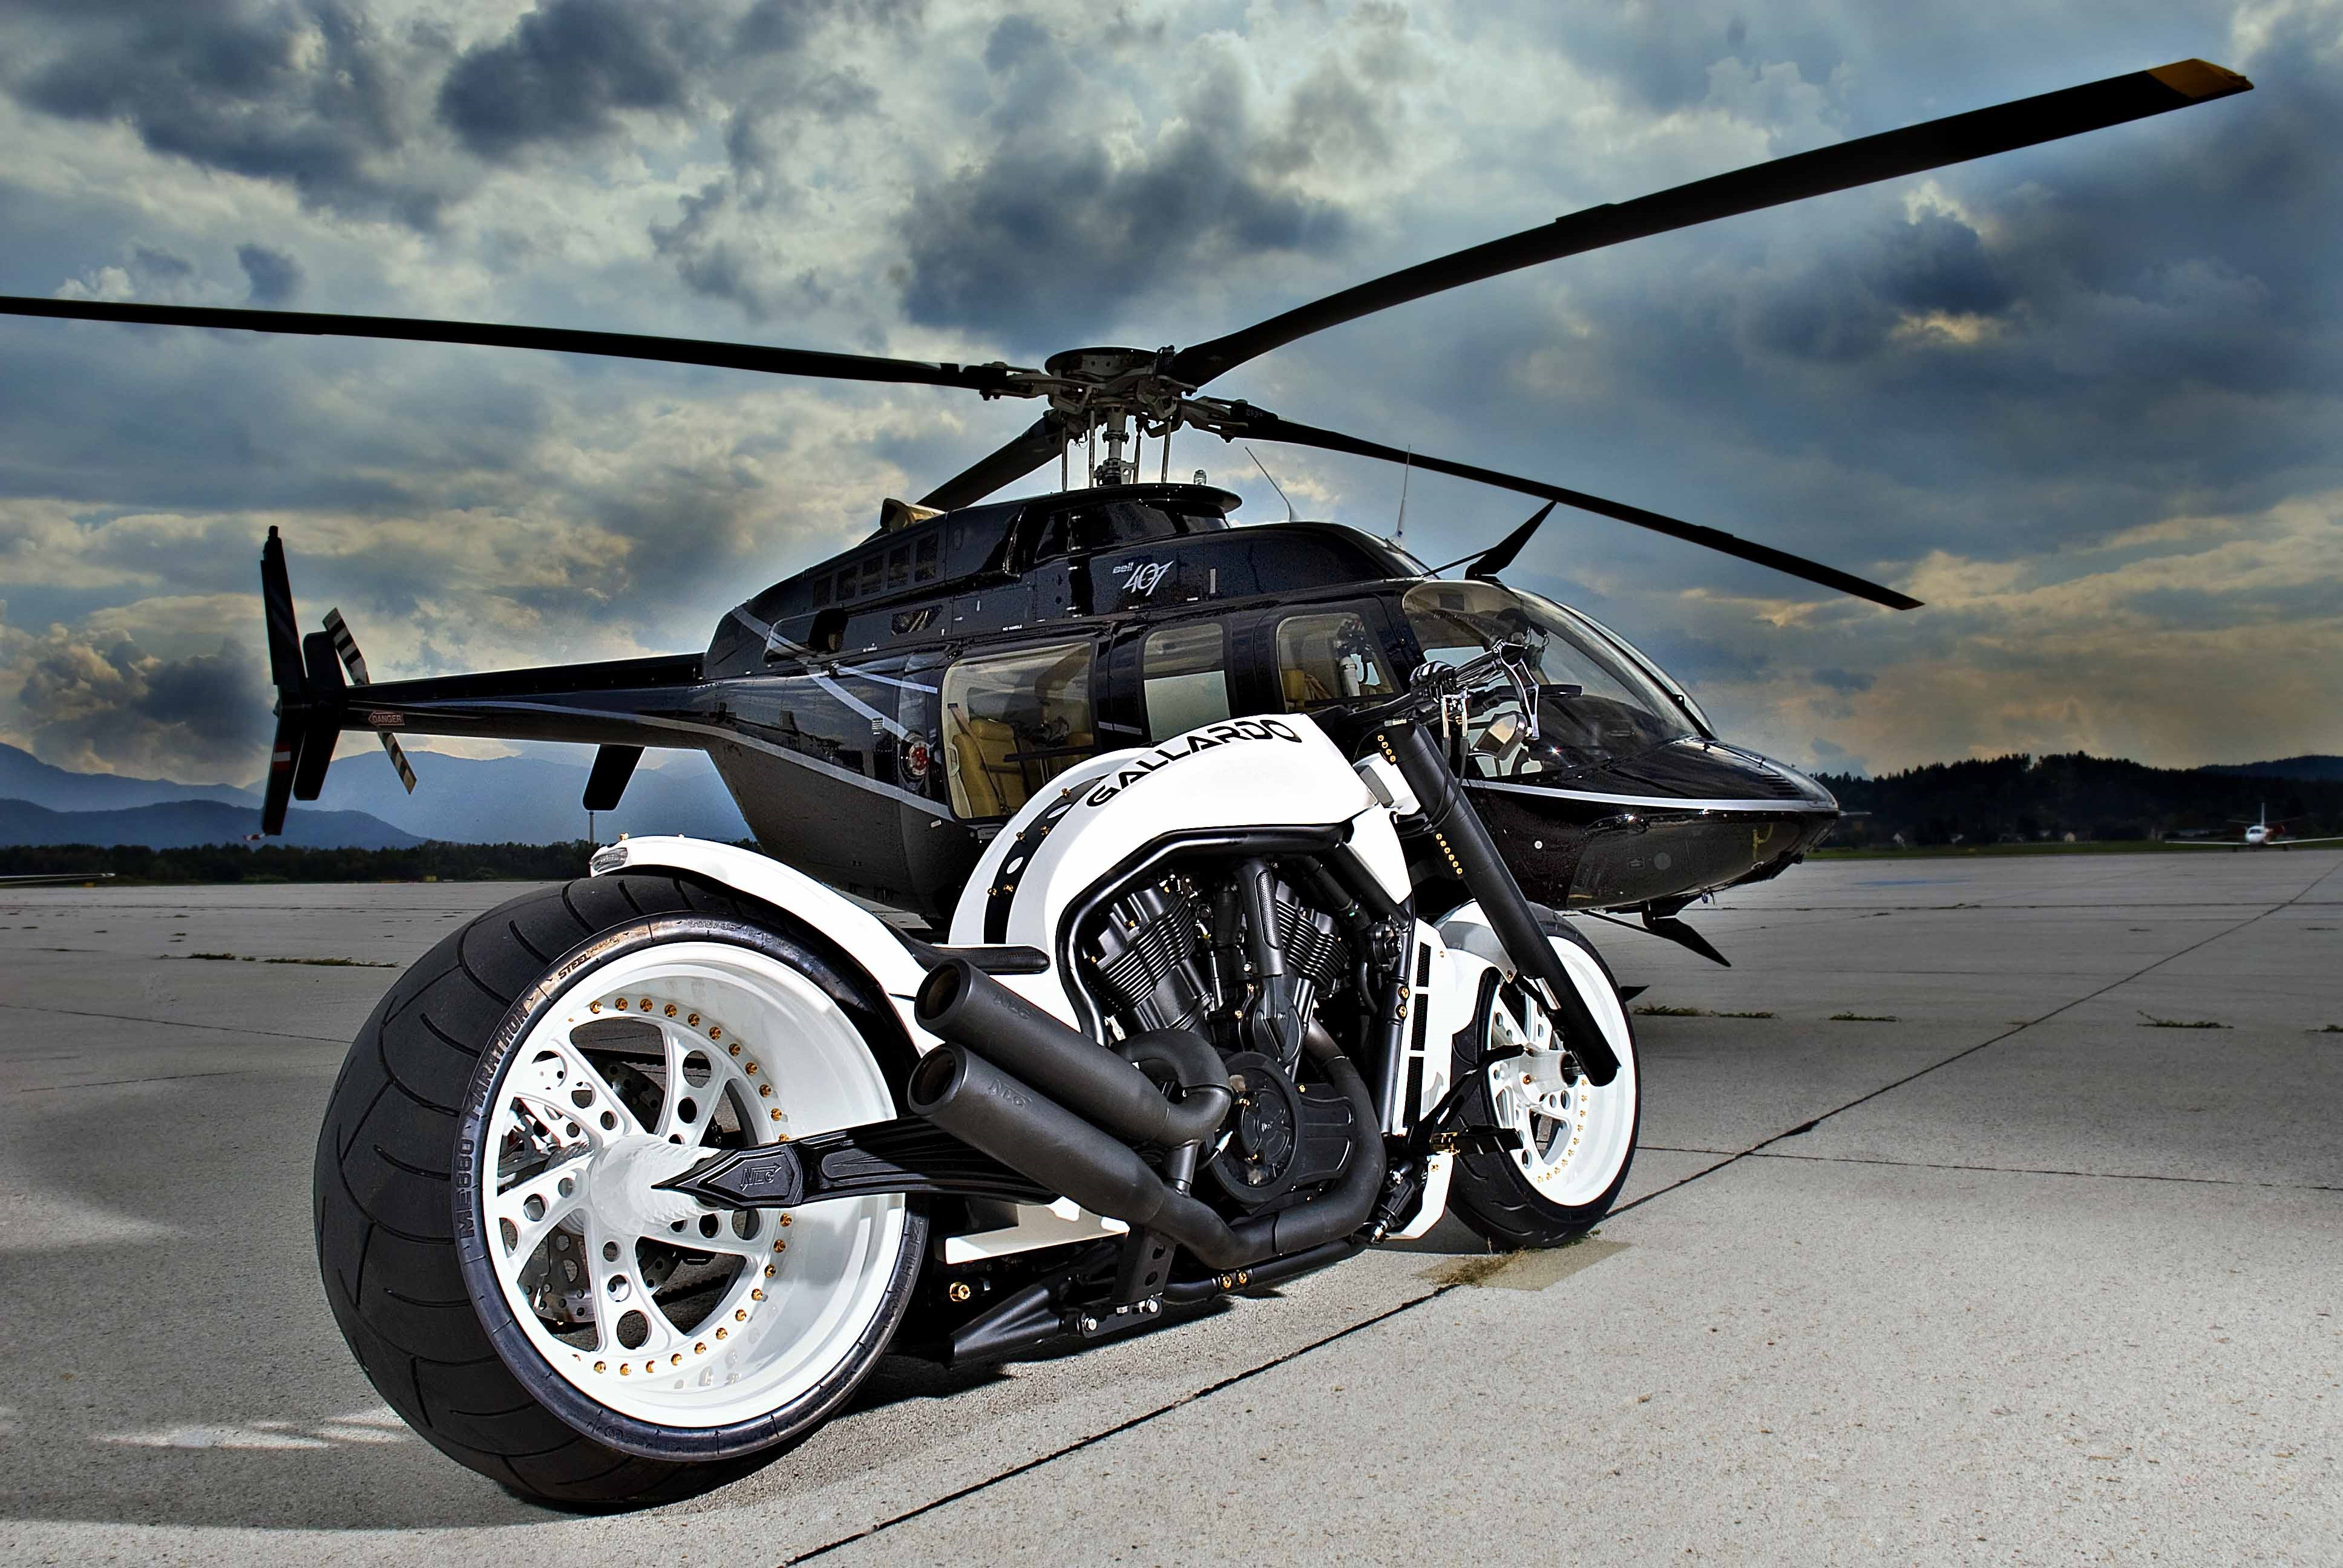 Harley Davidson V Rod Hd Wallpaper Harley Davidson V Rod Custom 3872x2592 Download Hd Wallpaper Wallpapertip